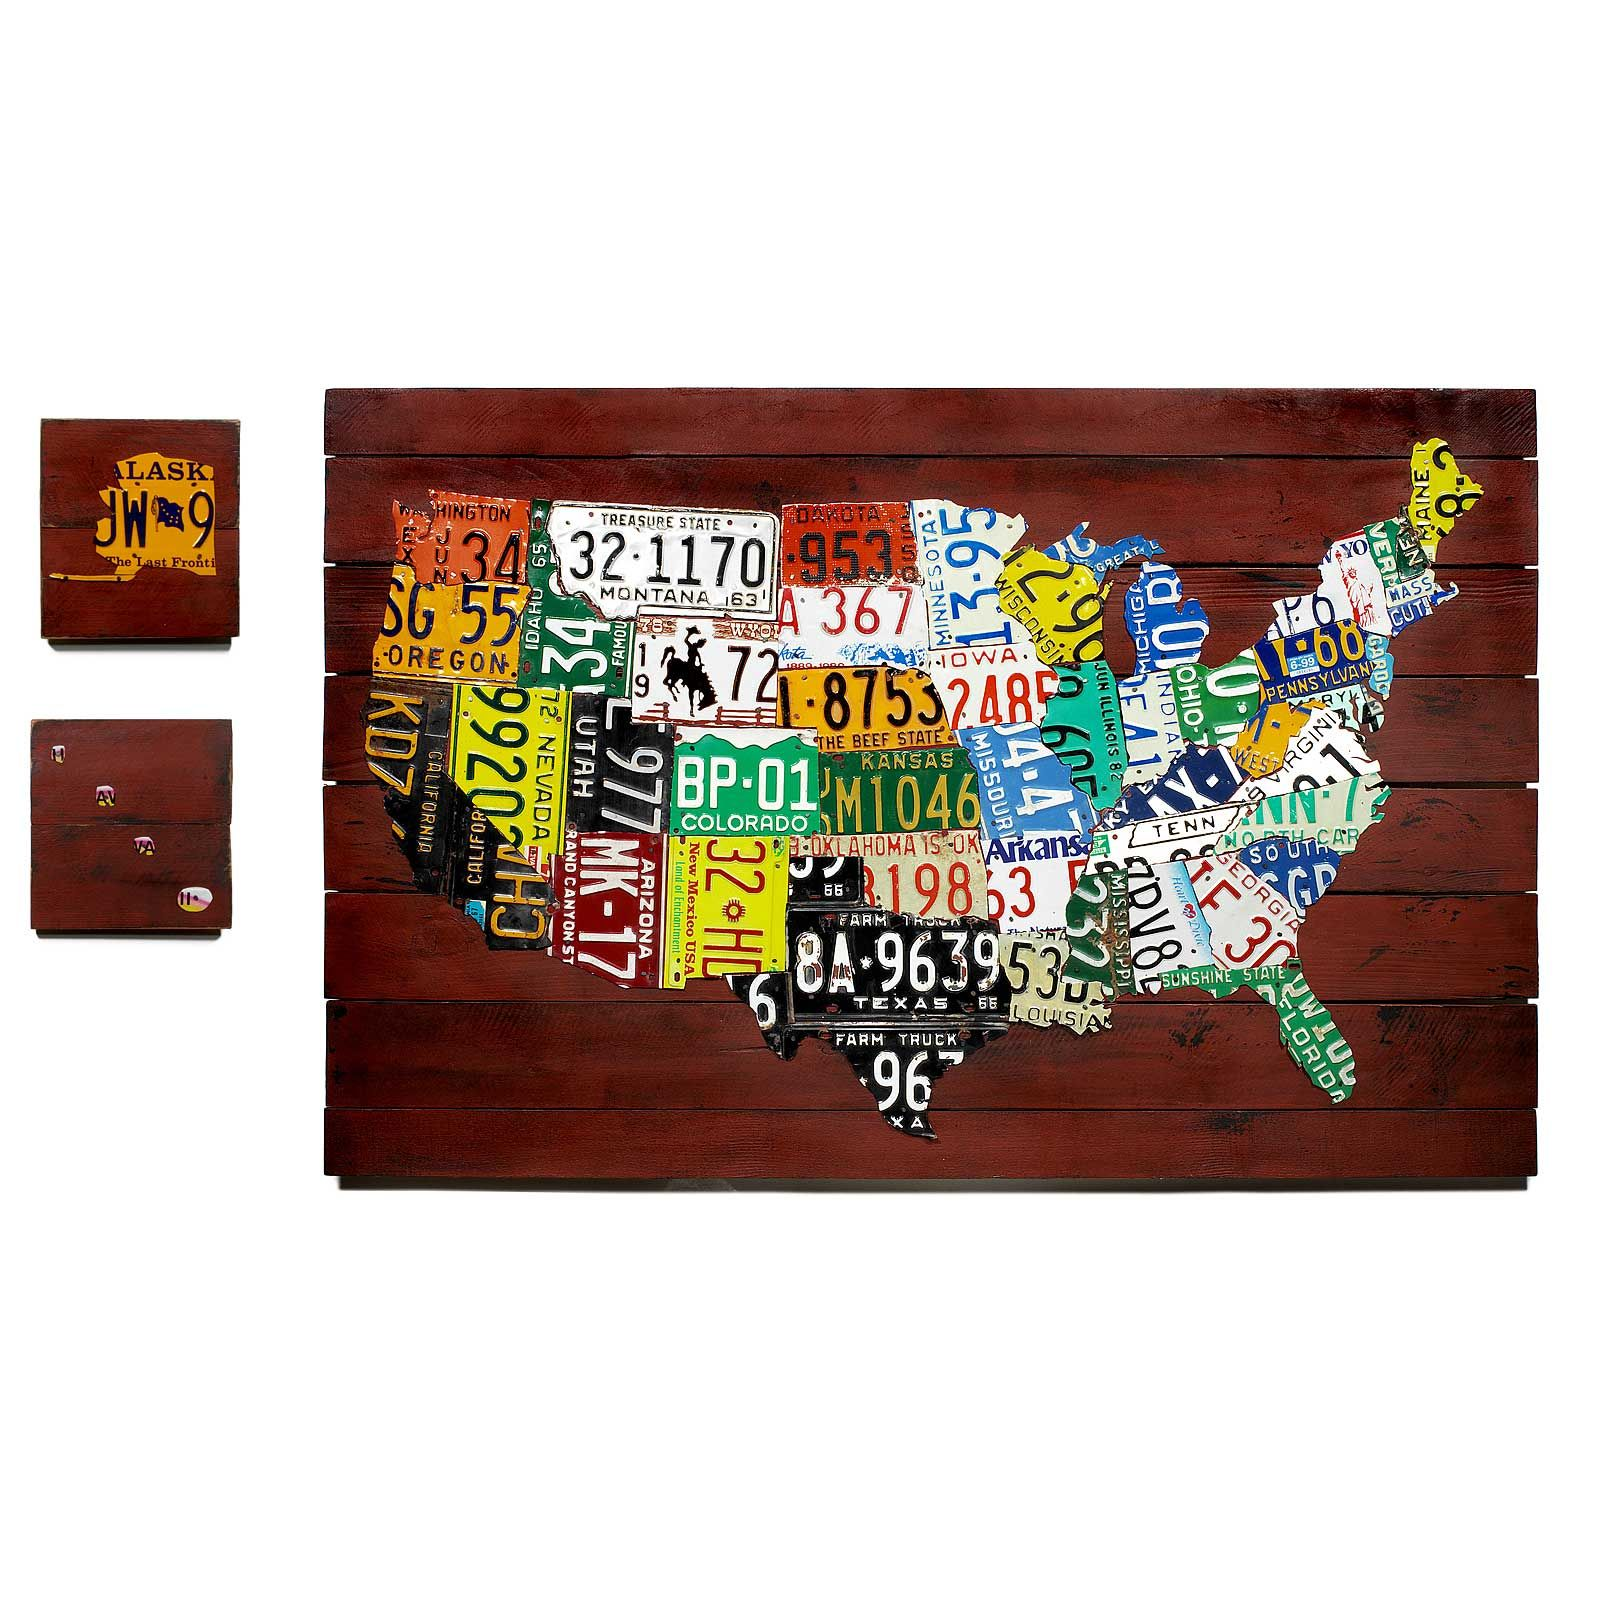 Reclaimed License Plate Map | Products | License plate art ... on state license plates, ohio license plates, preamble license plates, florida license plates, government license plates, germany license plates, pennsylvania license plates, front license plates,